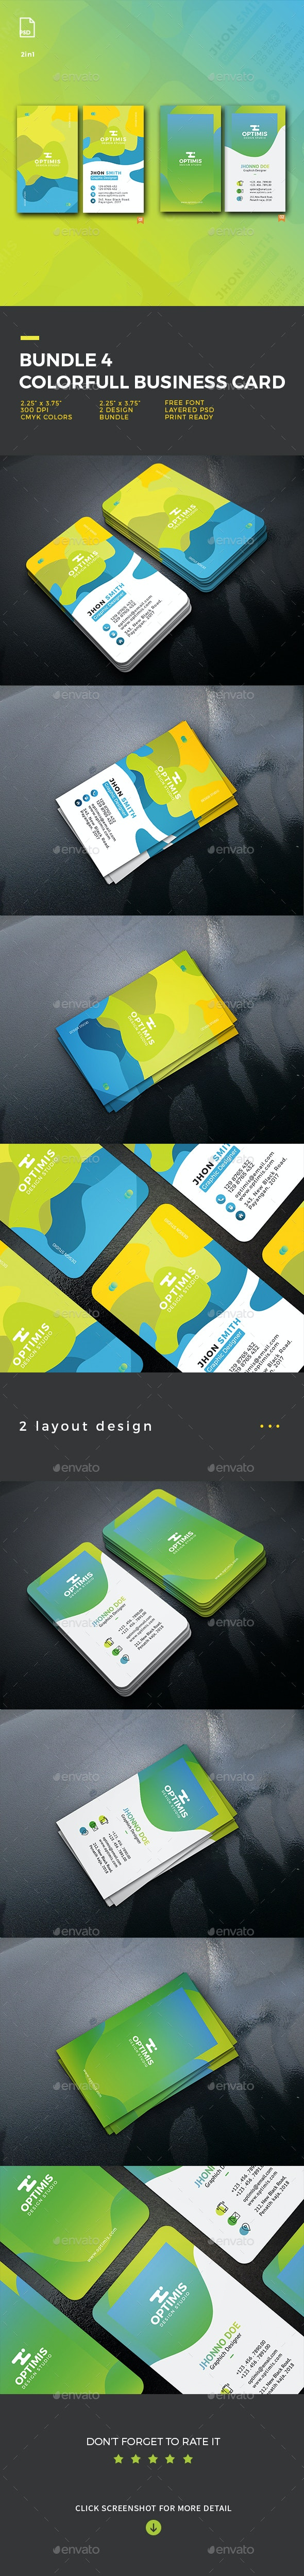 Bundle 4 Colorfull Business Card - Business Cards Print Templates